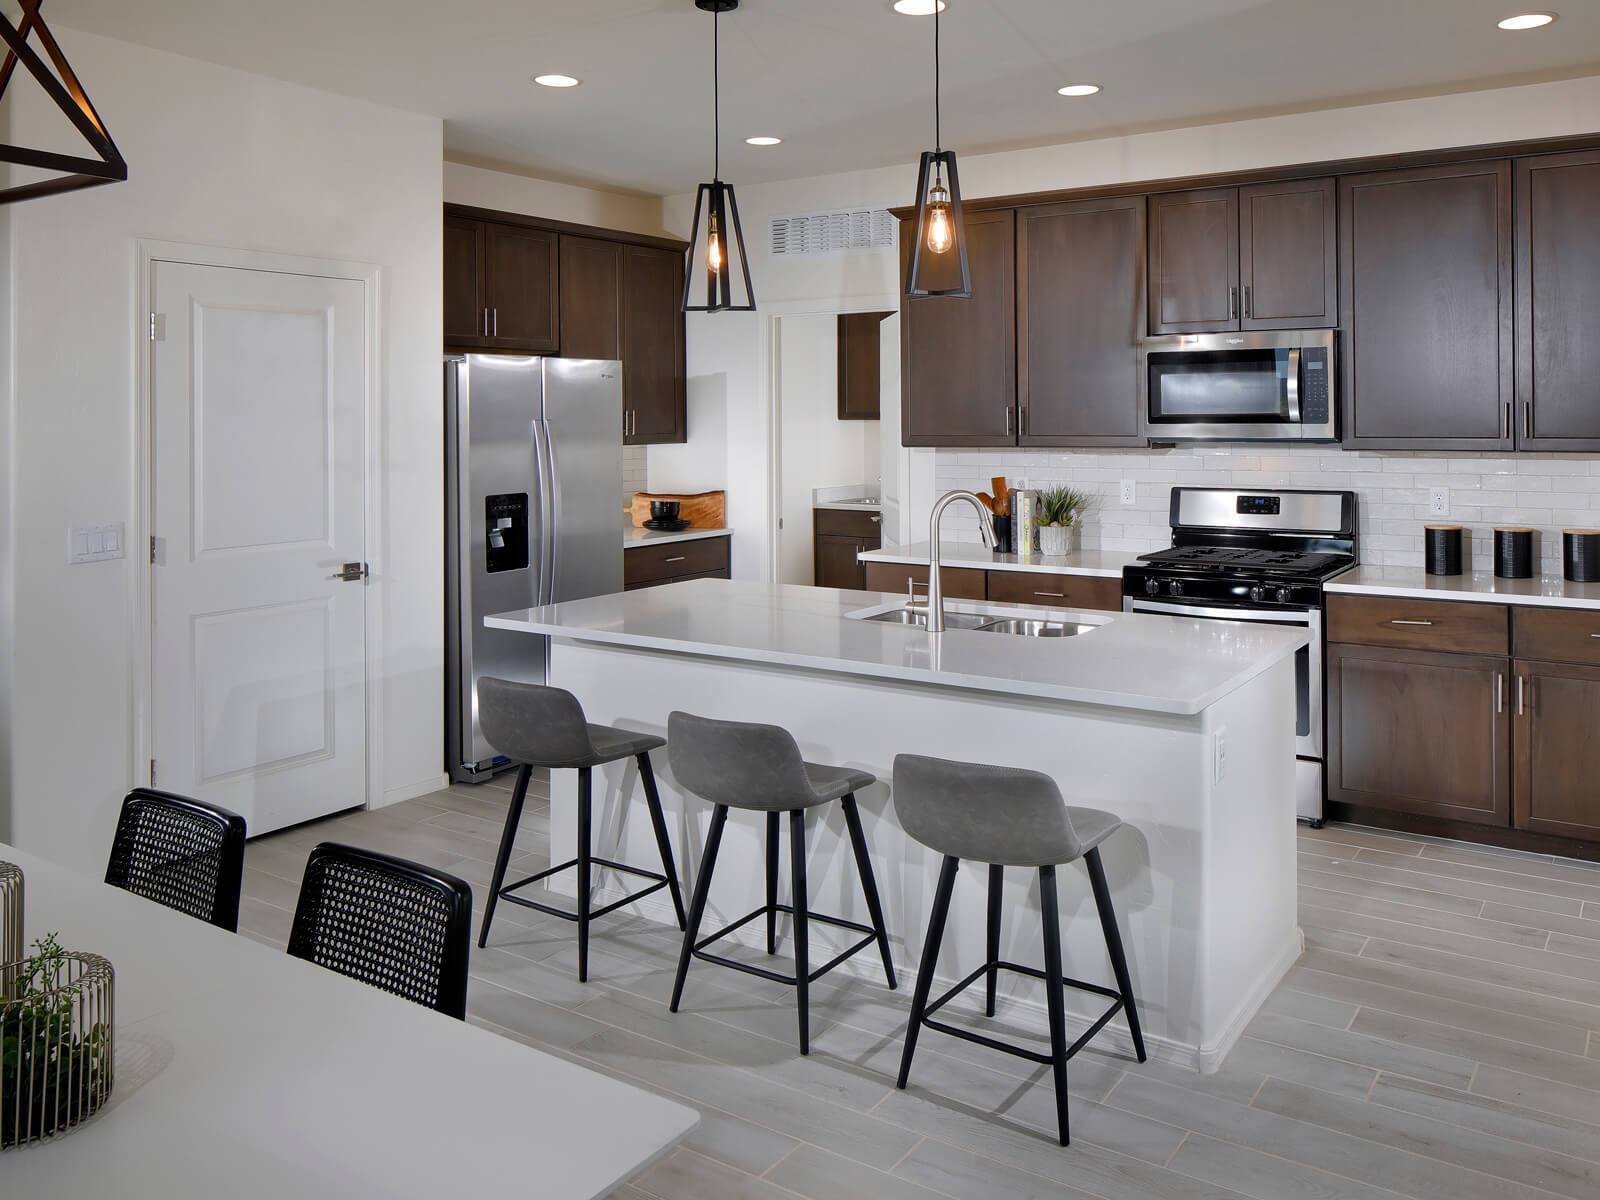 Kitchen featured in the Rillito By Meritage Homes in Tucson, AZ